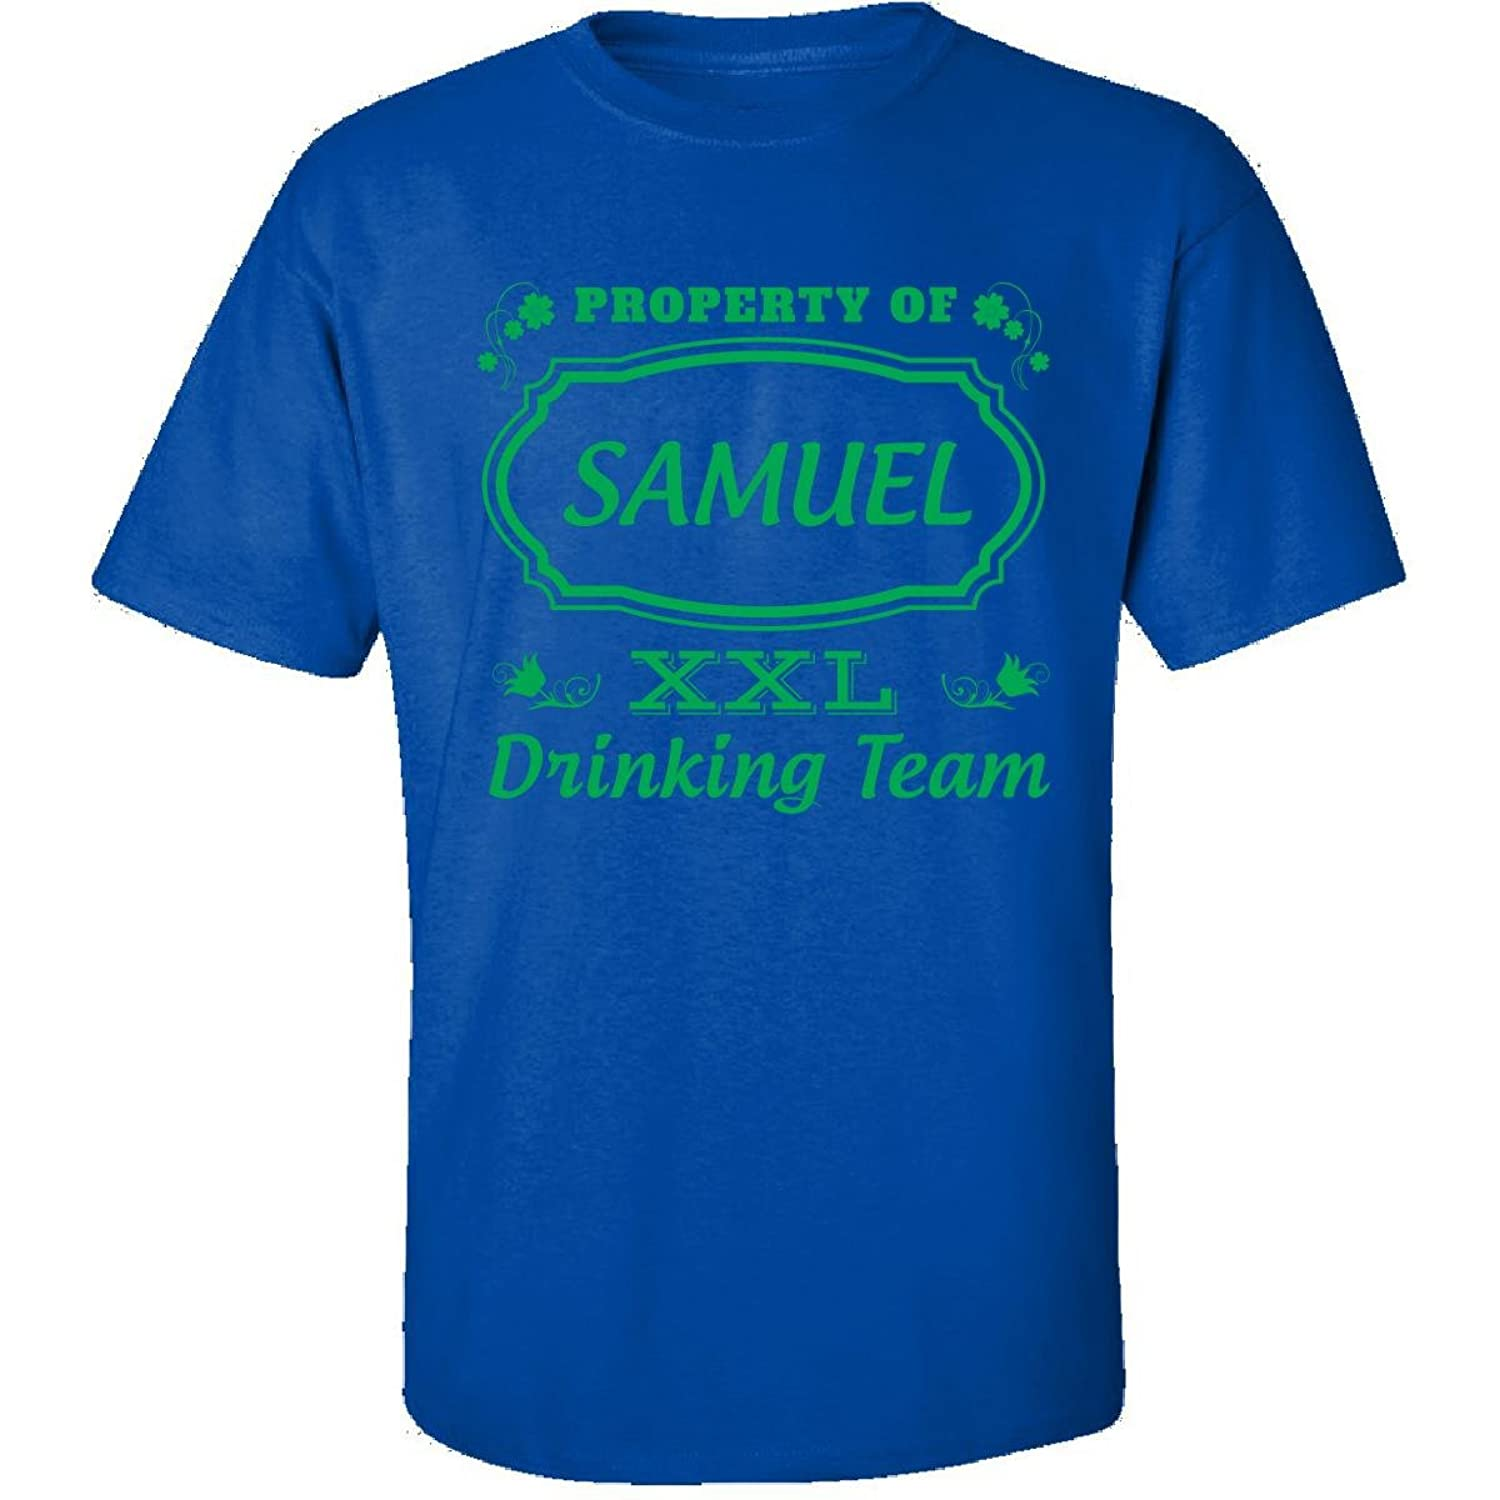 Property Of Samuel St Patrick Day Beer Drinking Team - Adult Shirt